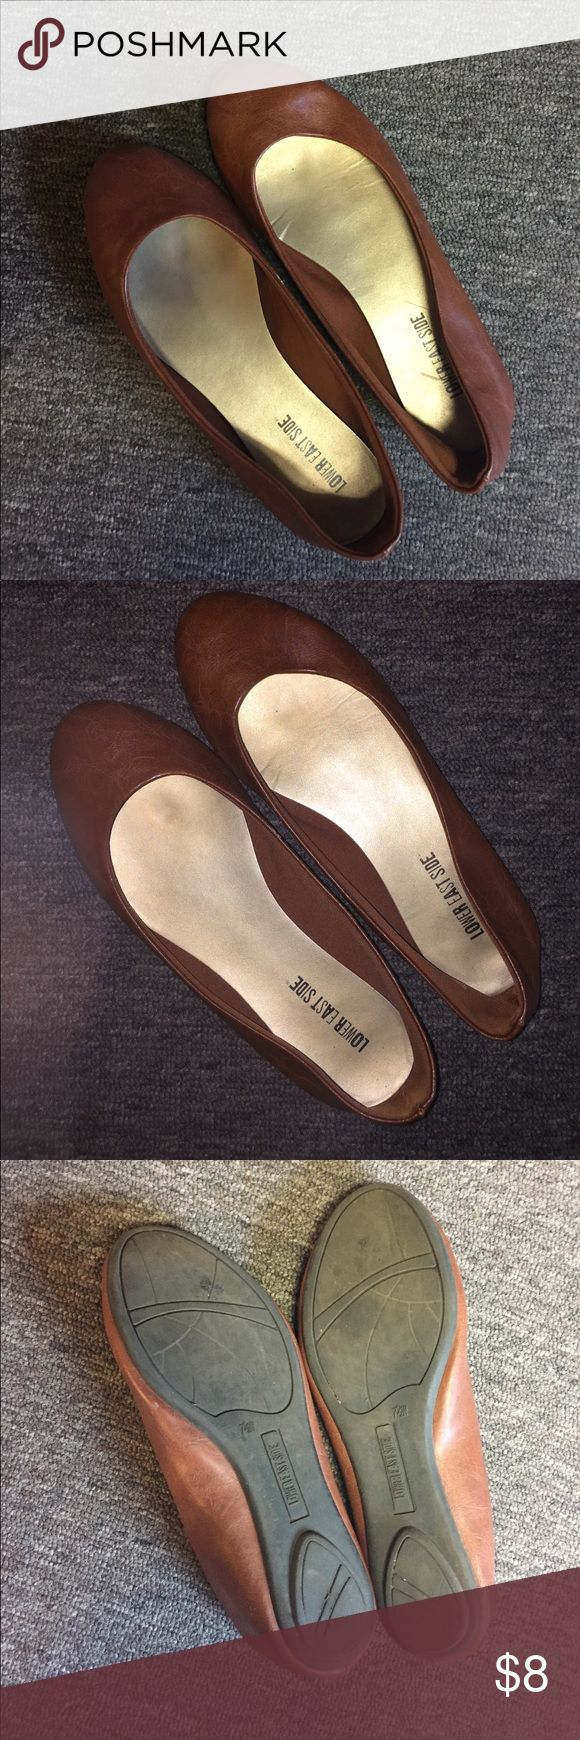 Brown Flats Dark-tan/brown ballet flats! Size 7 1/2 WIDE. In good condition Shoes Flats & Loafers